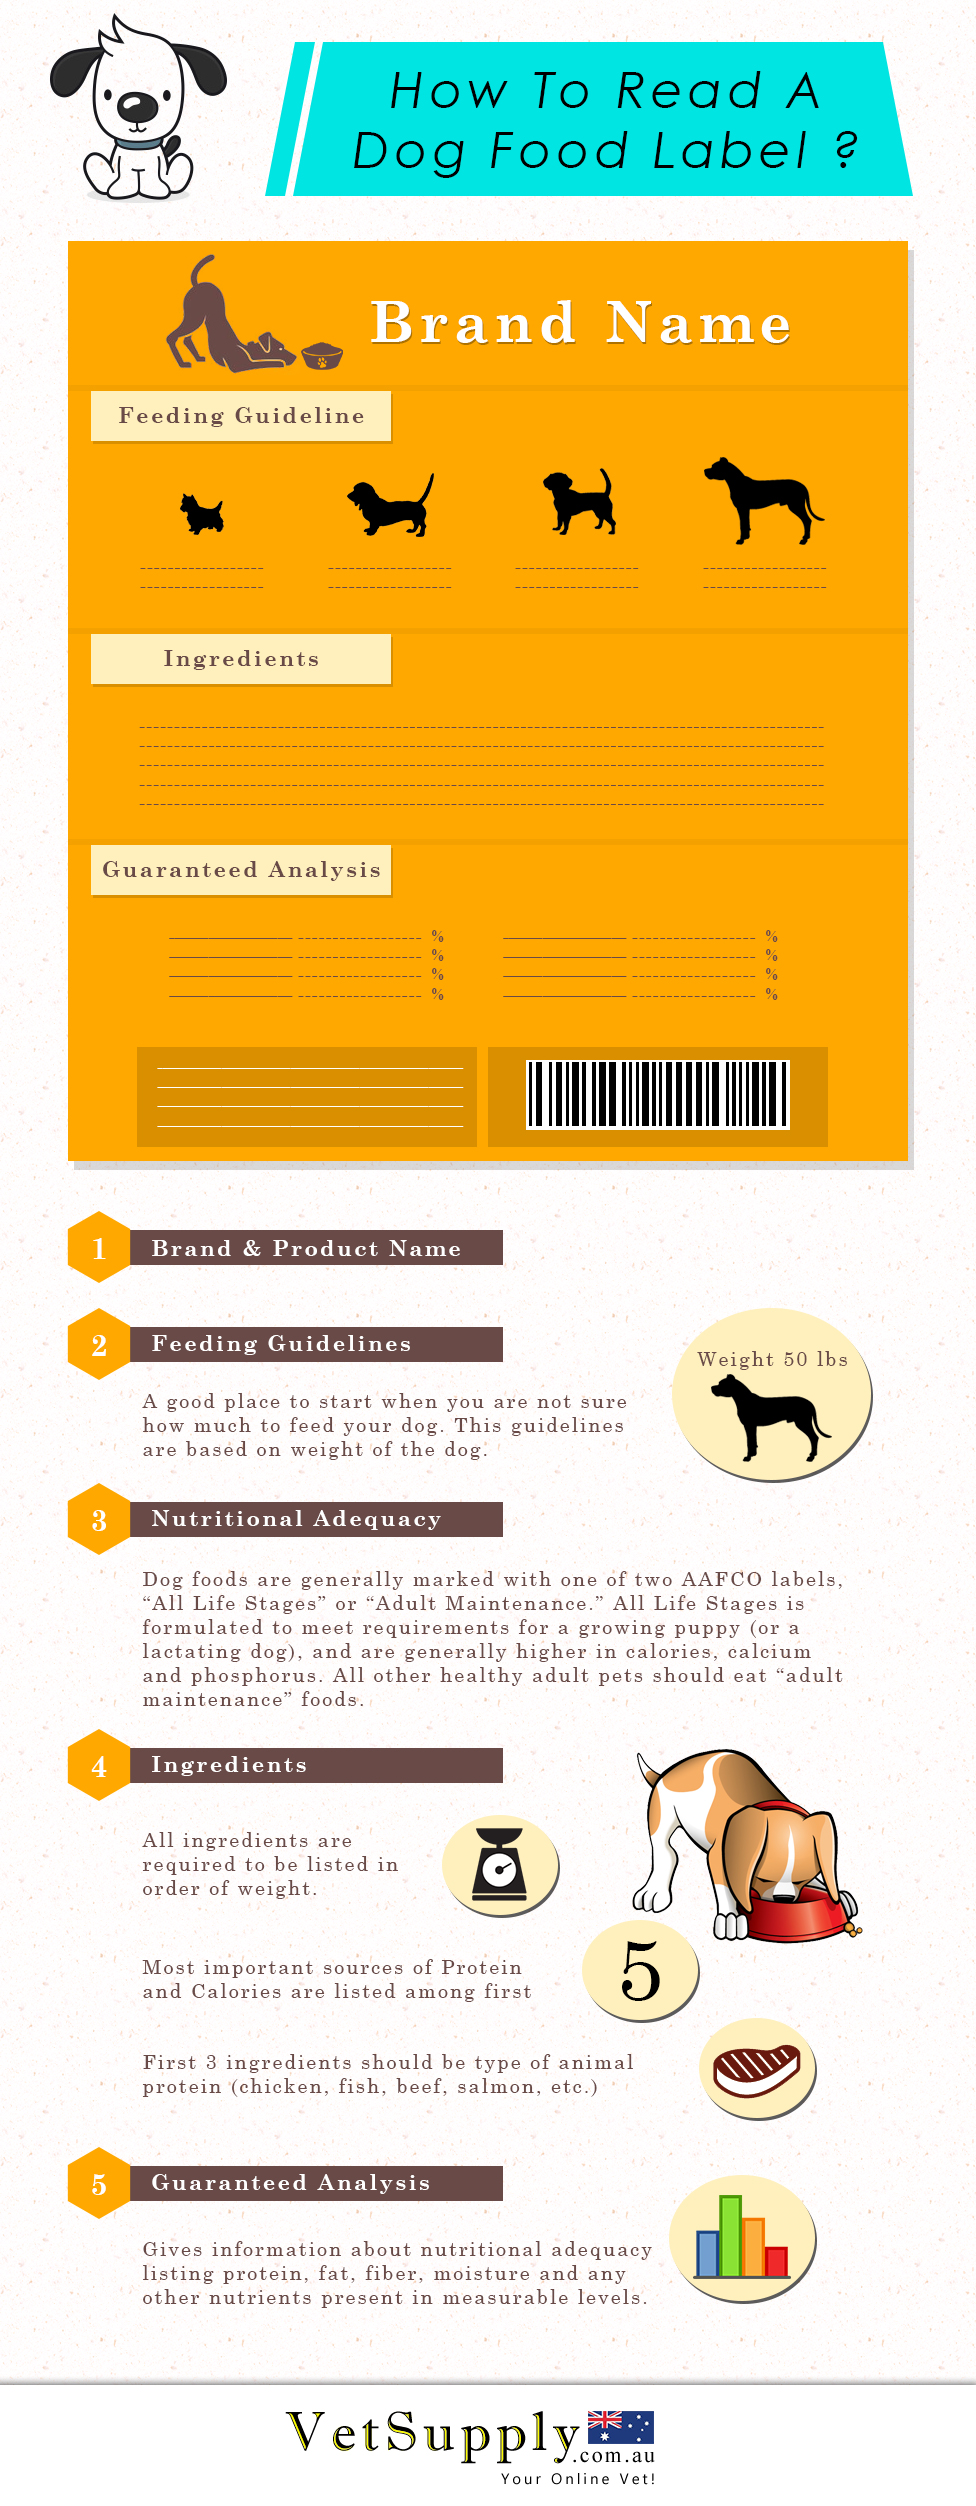 How to Read A Dog Food Label?